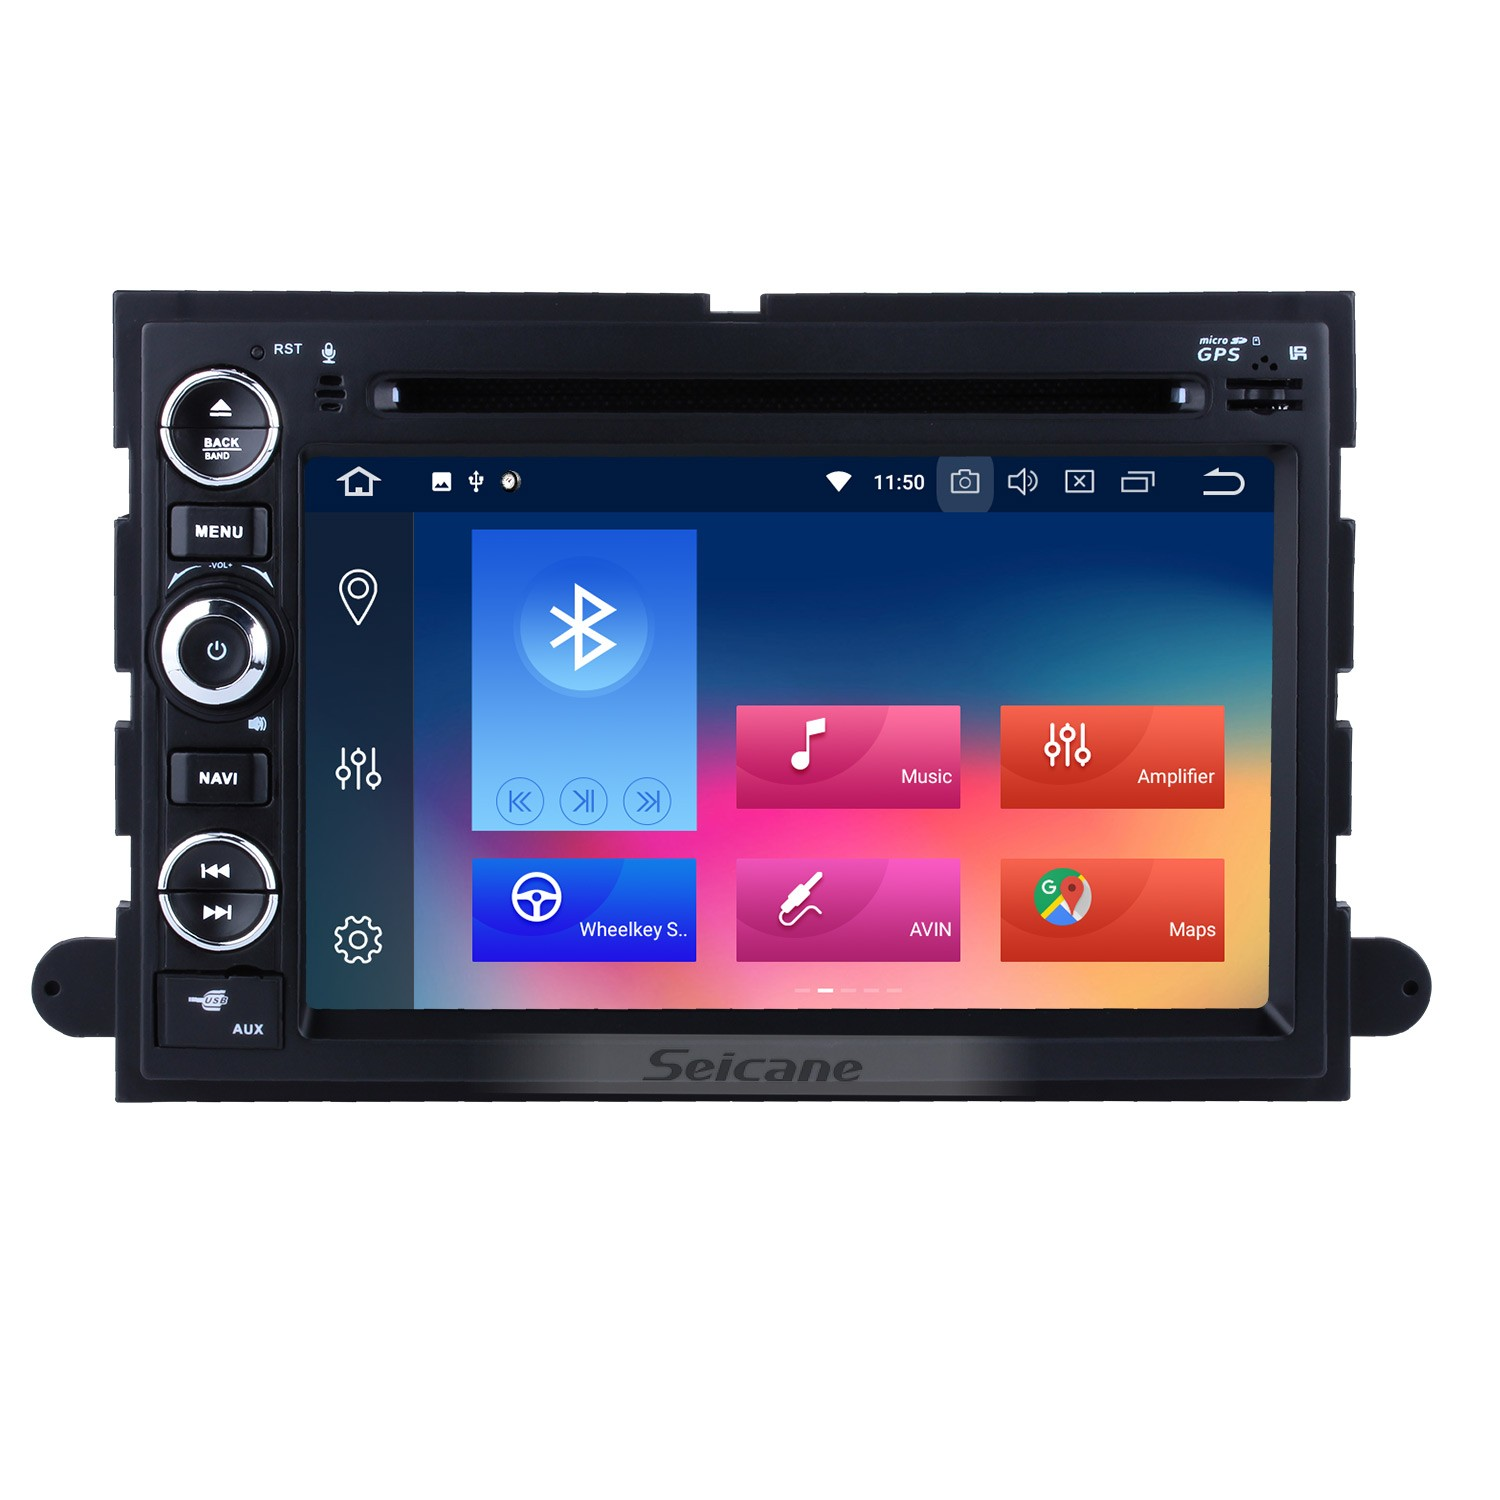 2013 kia forte left android 4 4 4 radio dvd player gps navigation system  mirror link